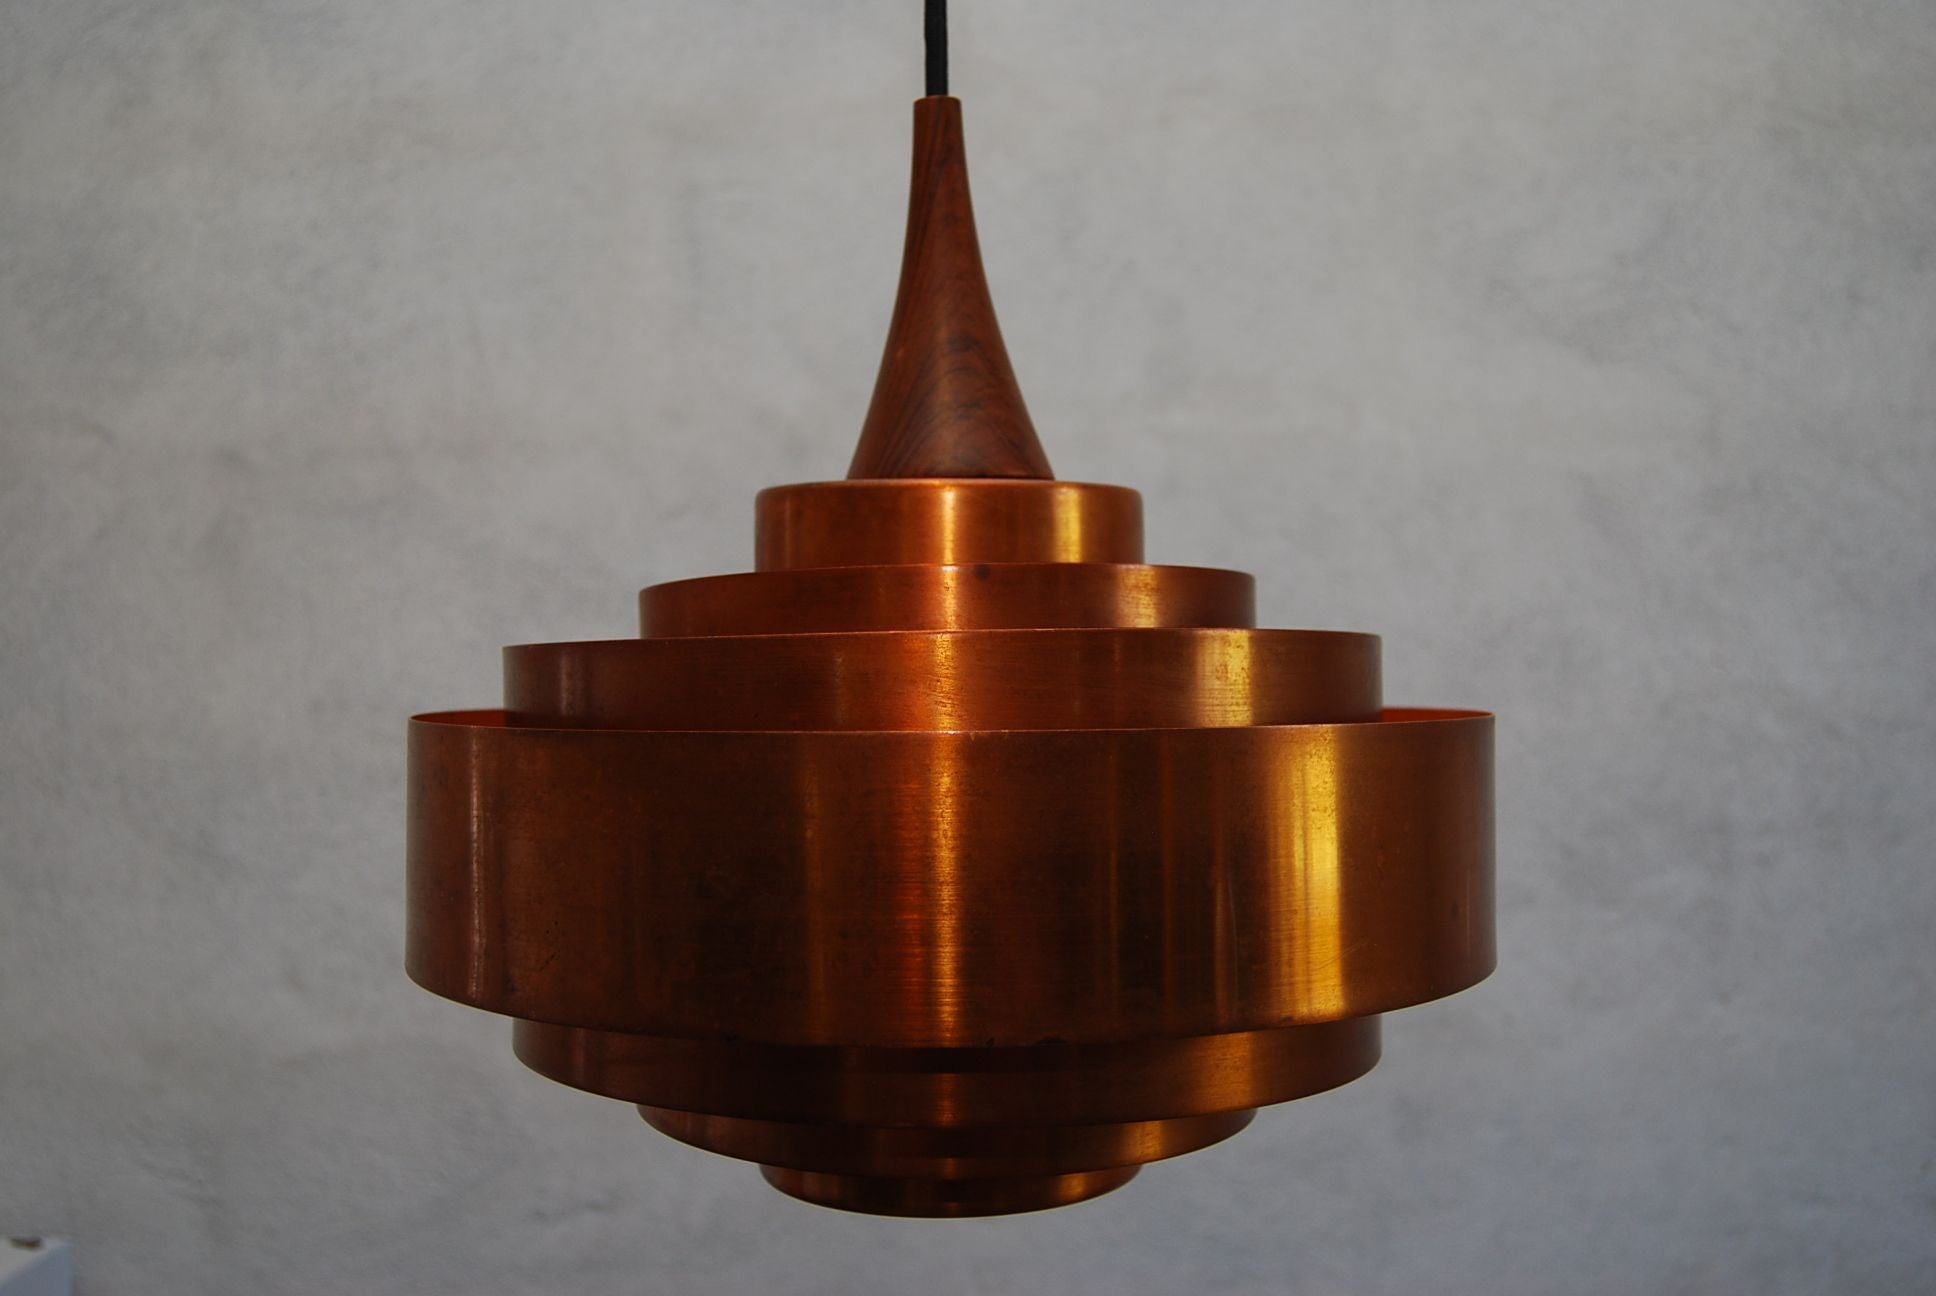 Chase & Sorensen Copper Ring Ceiling Lamp